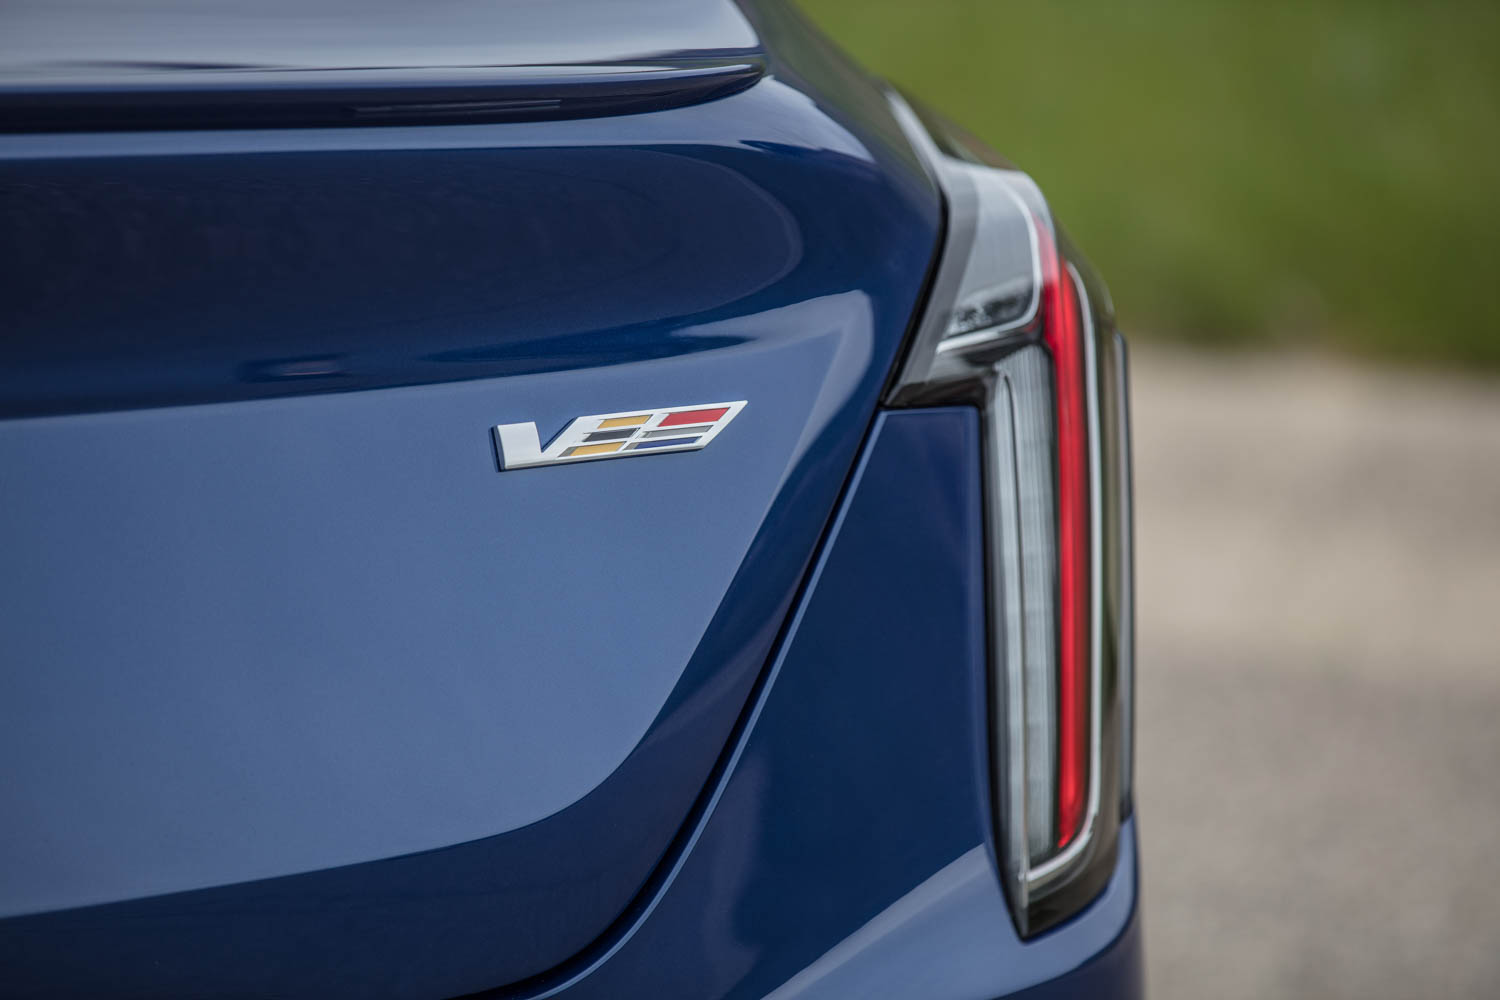 2020 Cadillac CT4-V badge